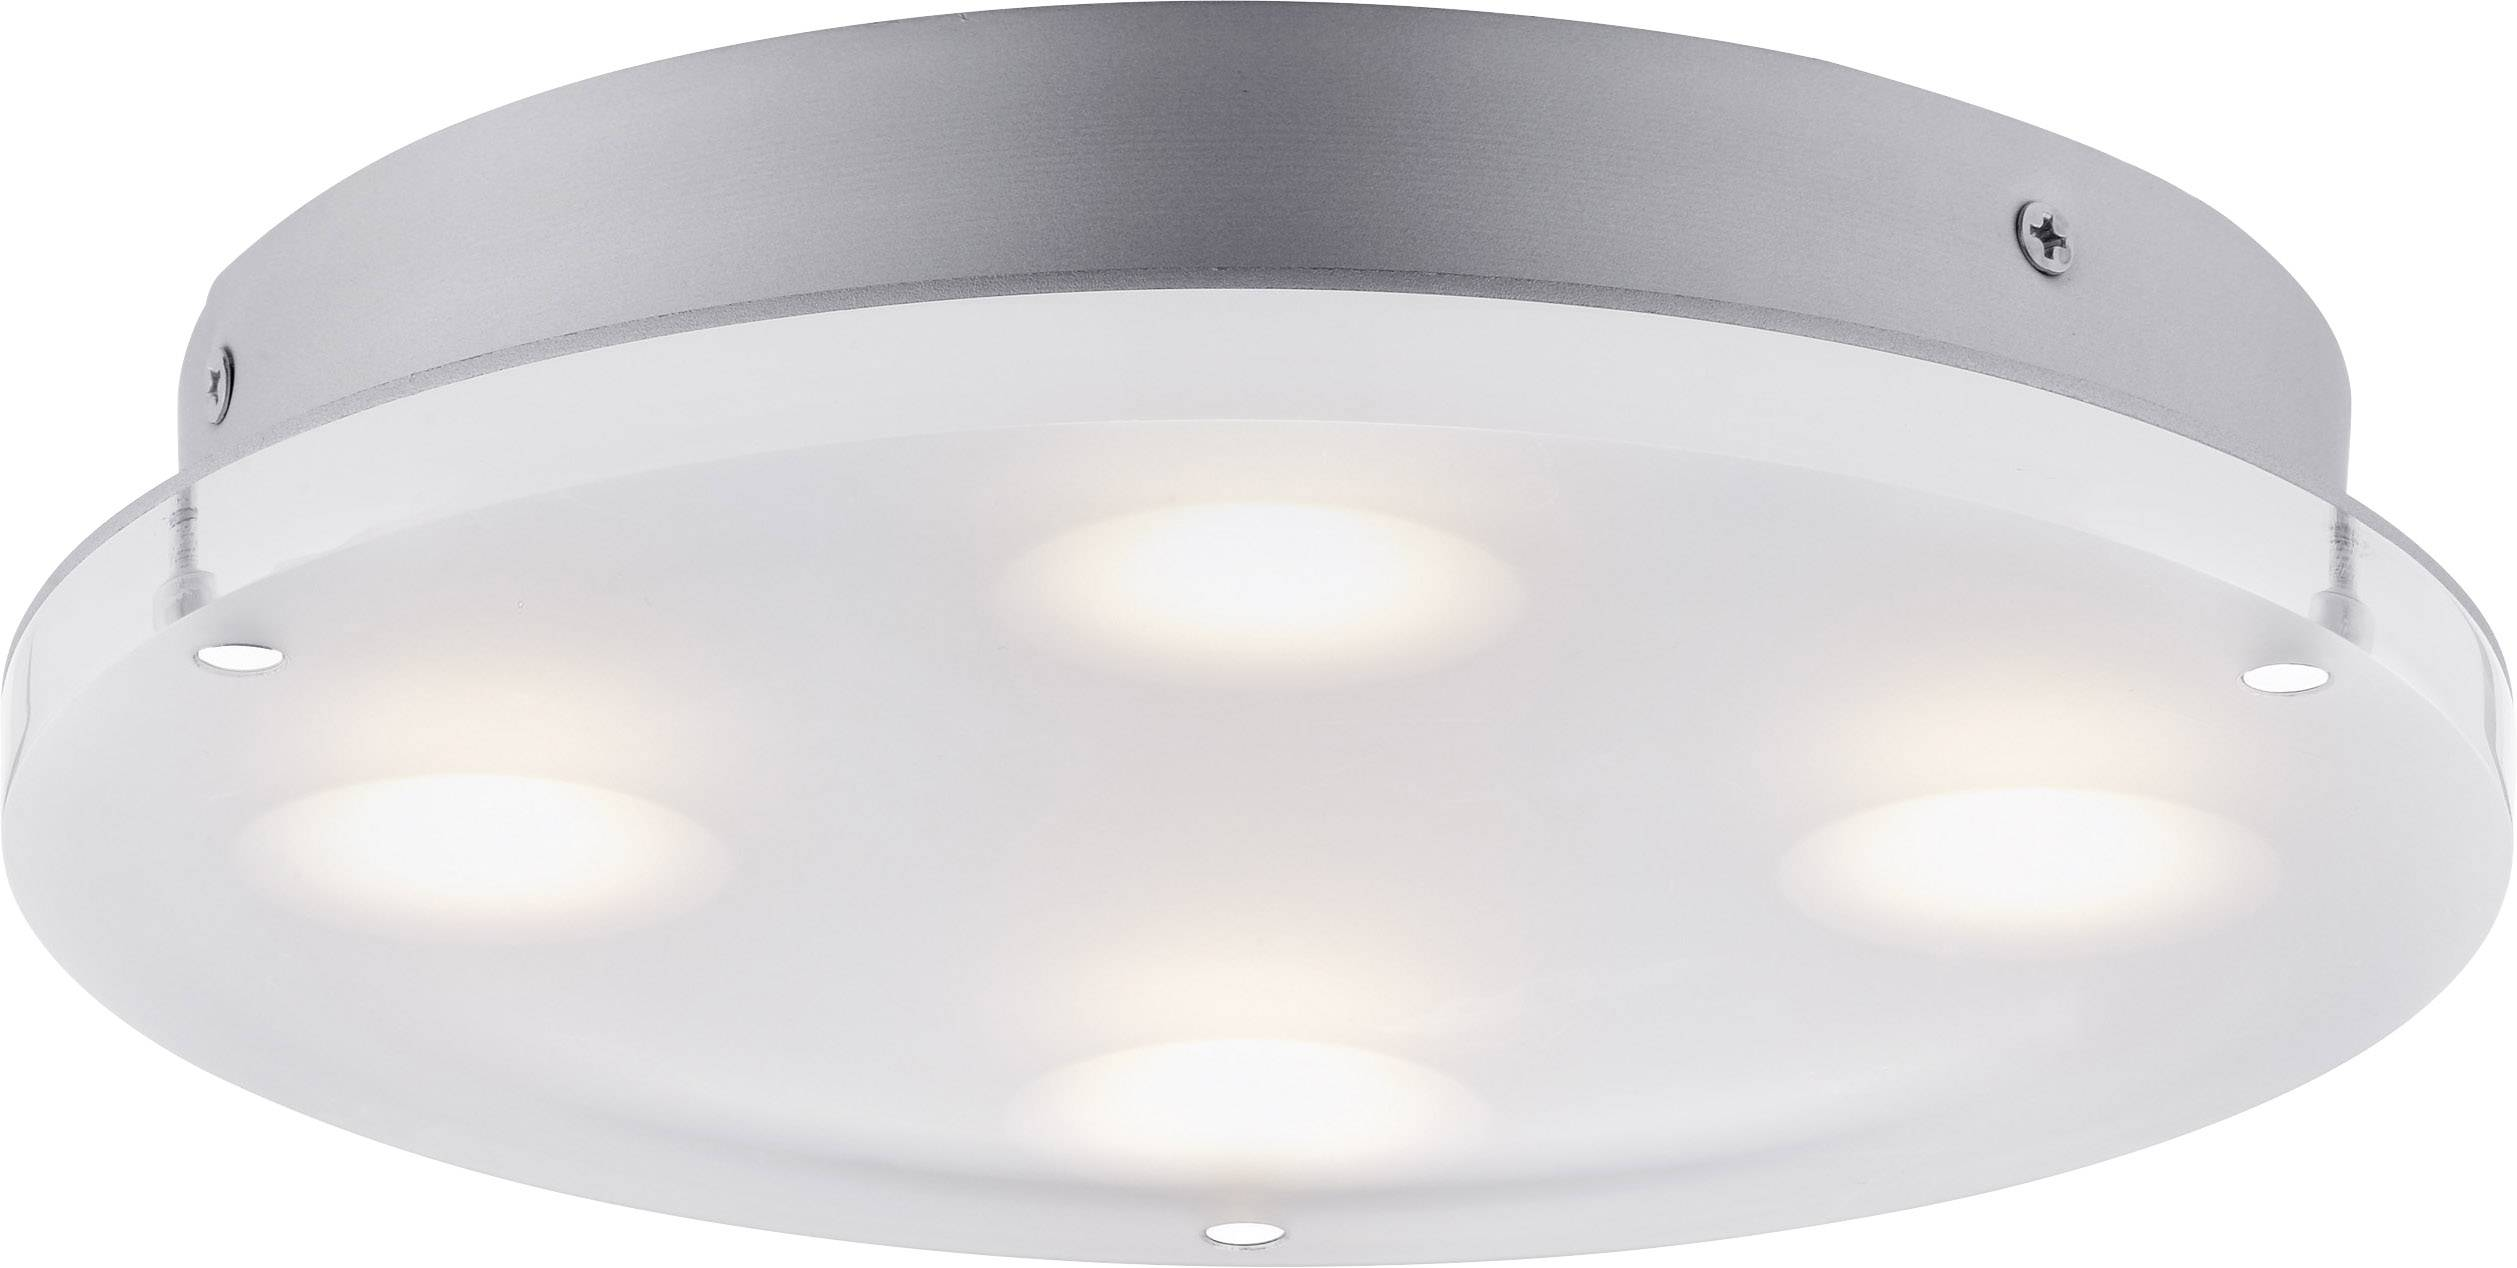 Deckenleuchte Bad Led Paulmann Led Bad Deckenleuchte Eek Led A E 18w 70509 Minor Satin